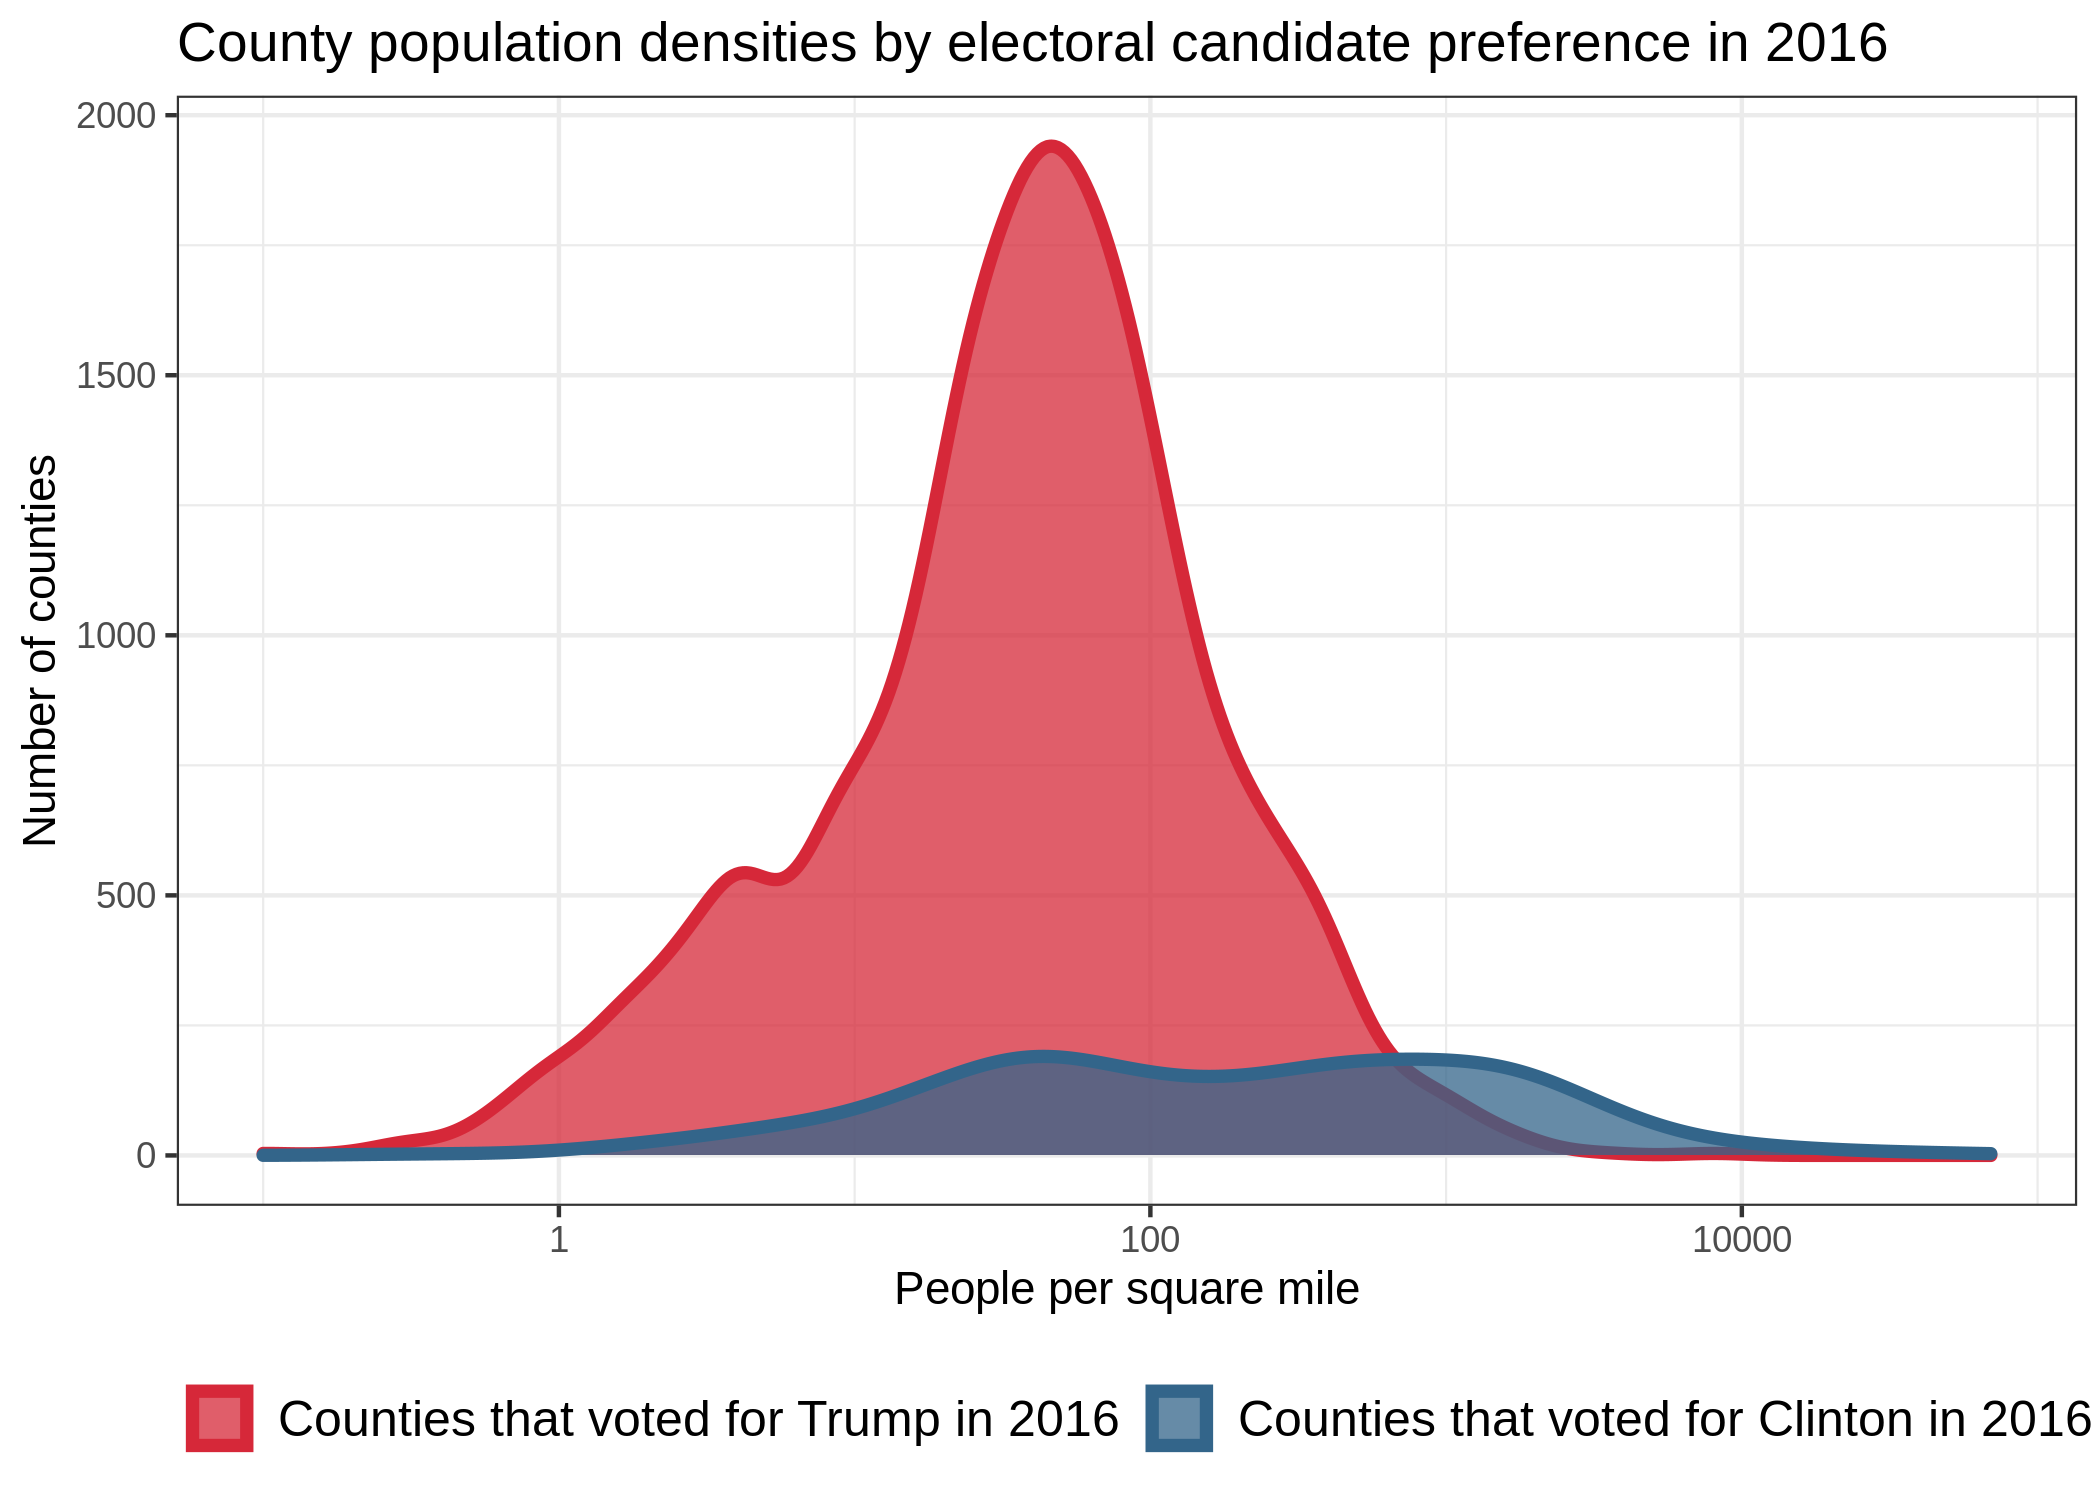 A plot showing the distribution of county population densities by 2016 presidential candidate preferece